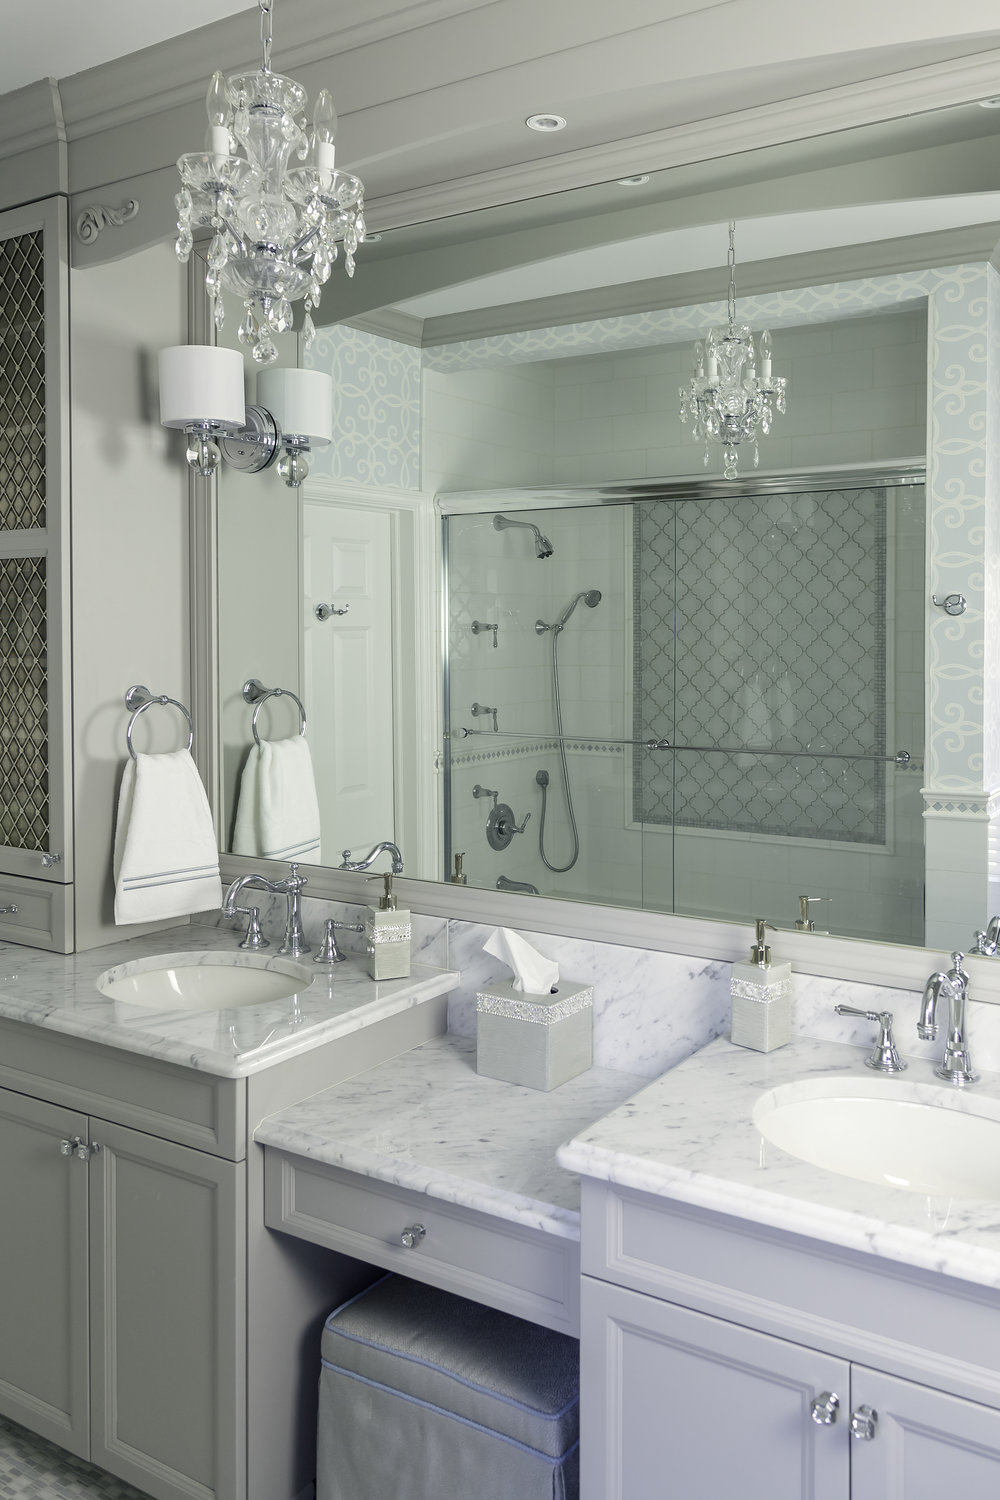 Bright bathroom with double sink and full wall mirror